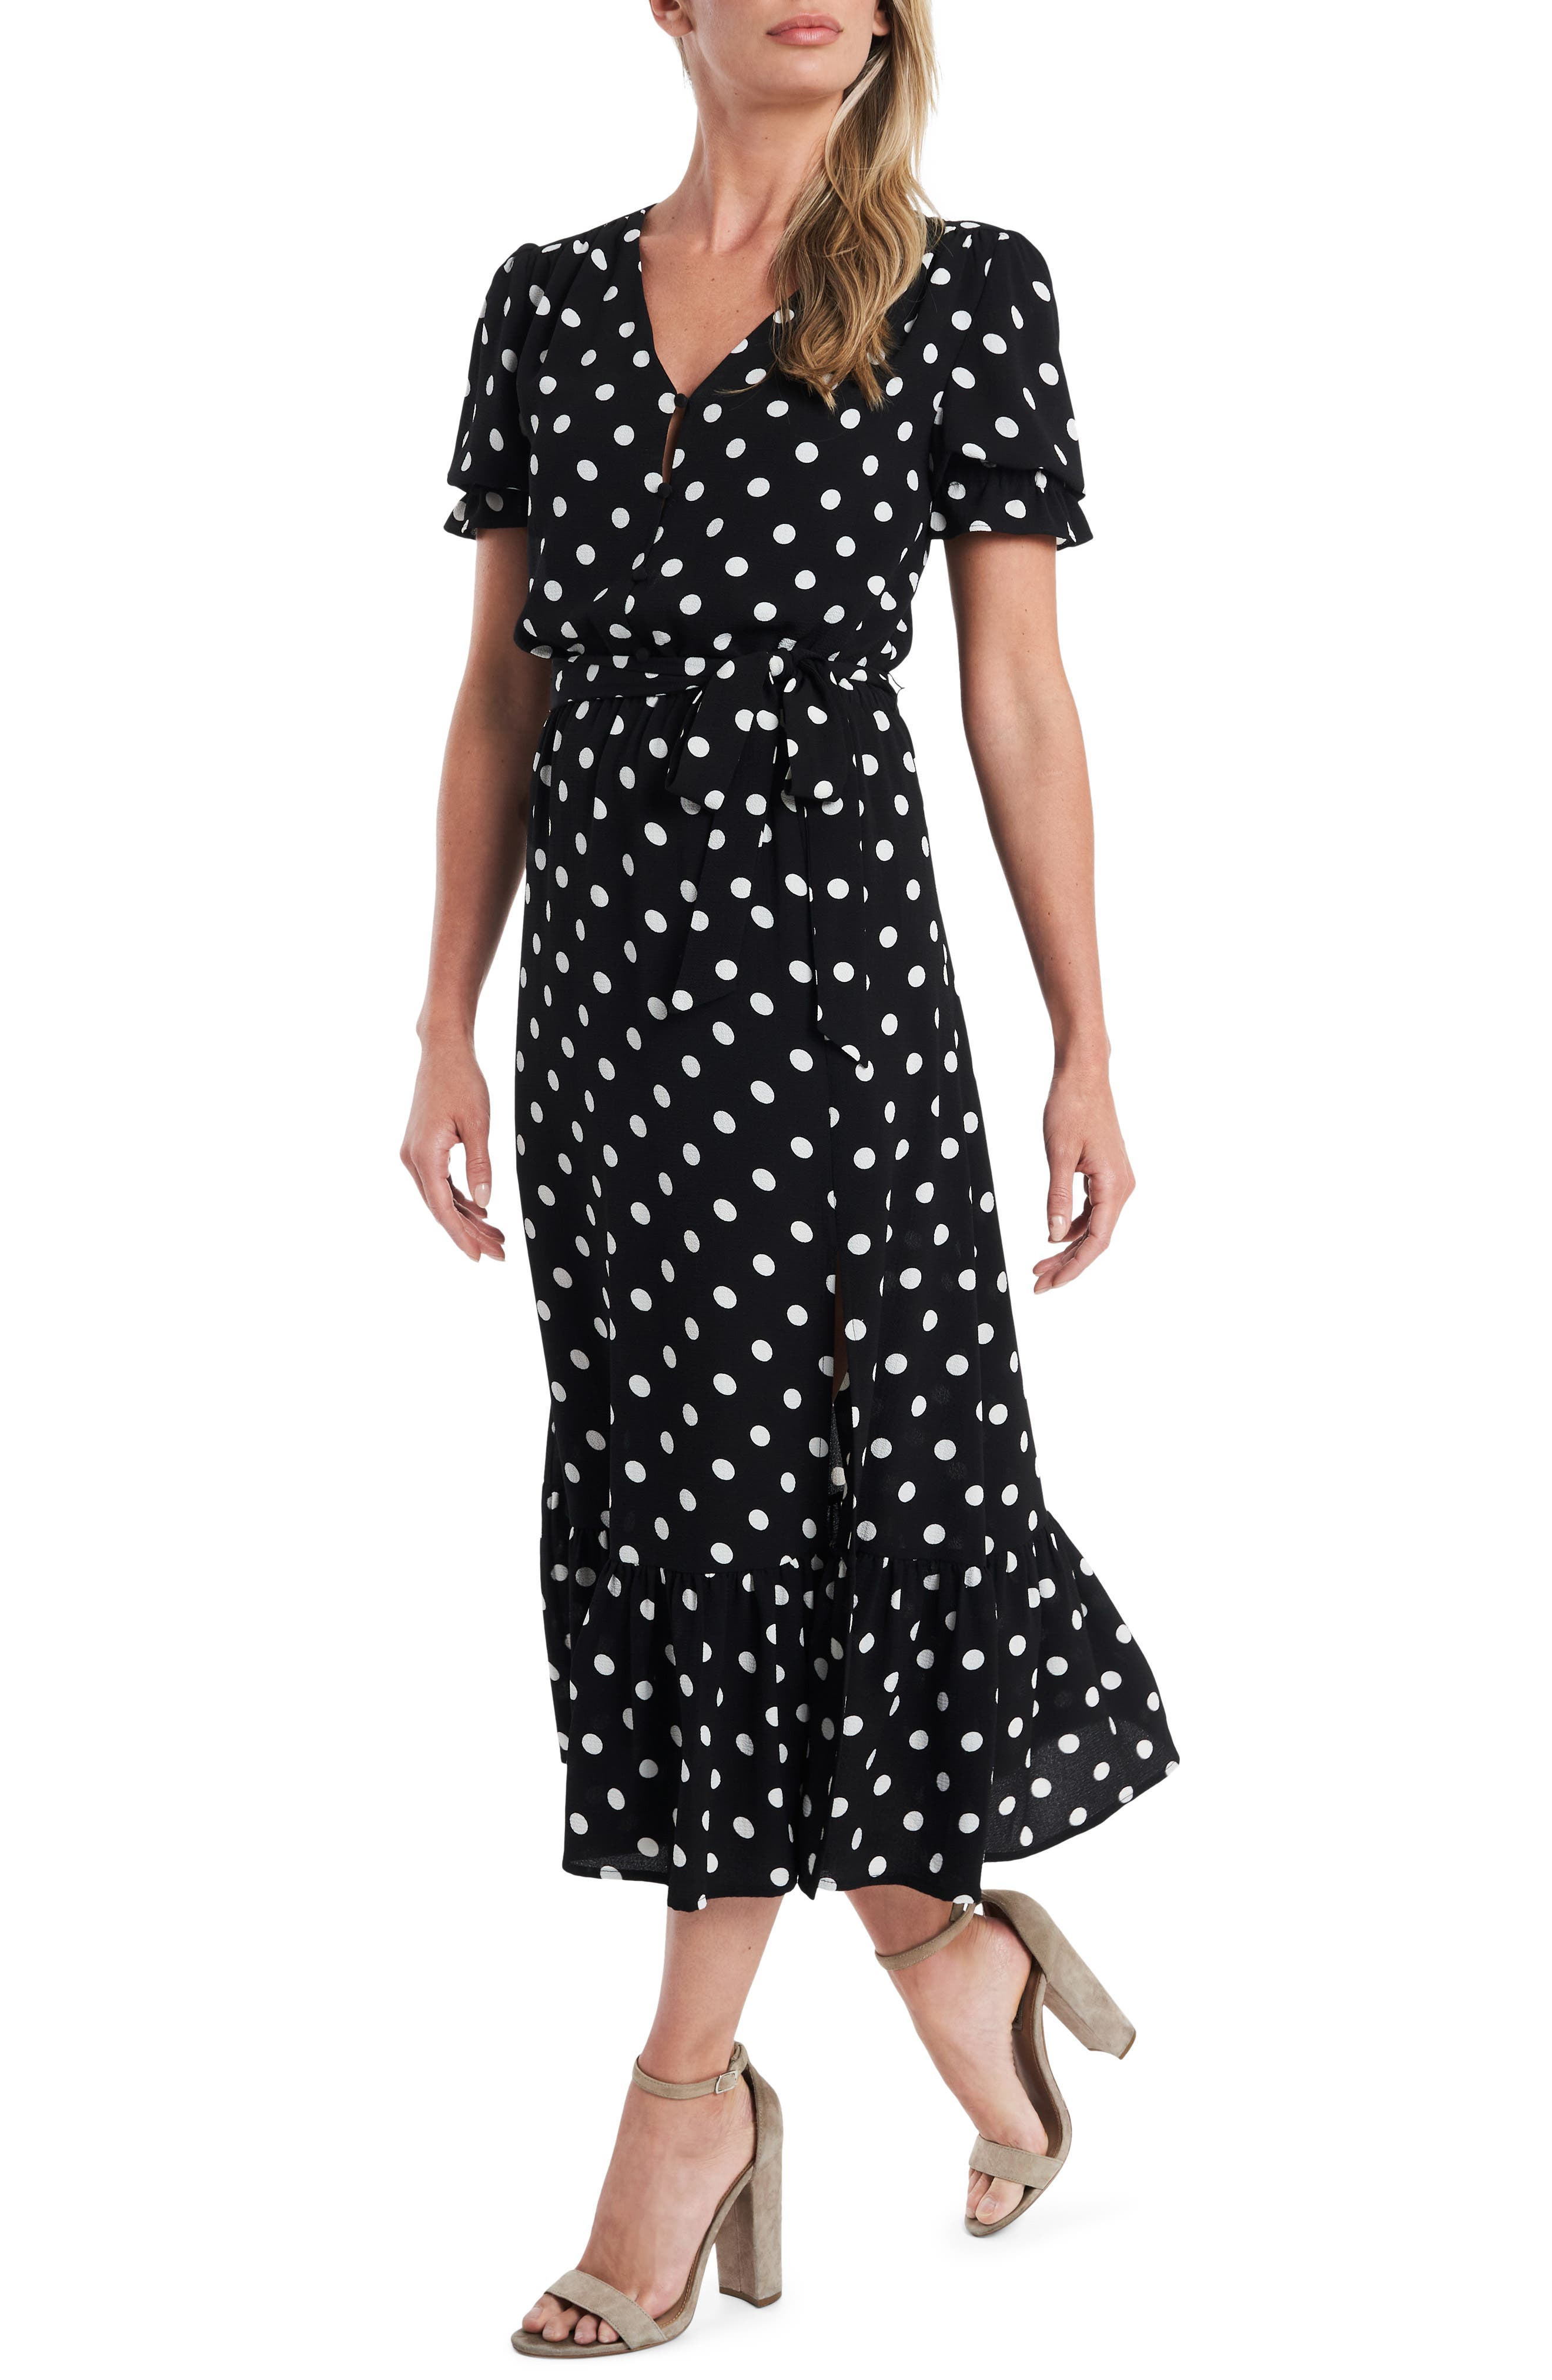 1930s Style Clothing and Fashion Womens Cece Disco Dot Puff Sleeve Midi Dress Size 12 - Black $139.00 AT vintagedancer.com